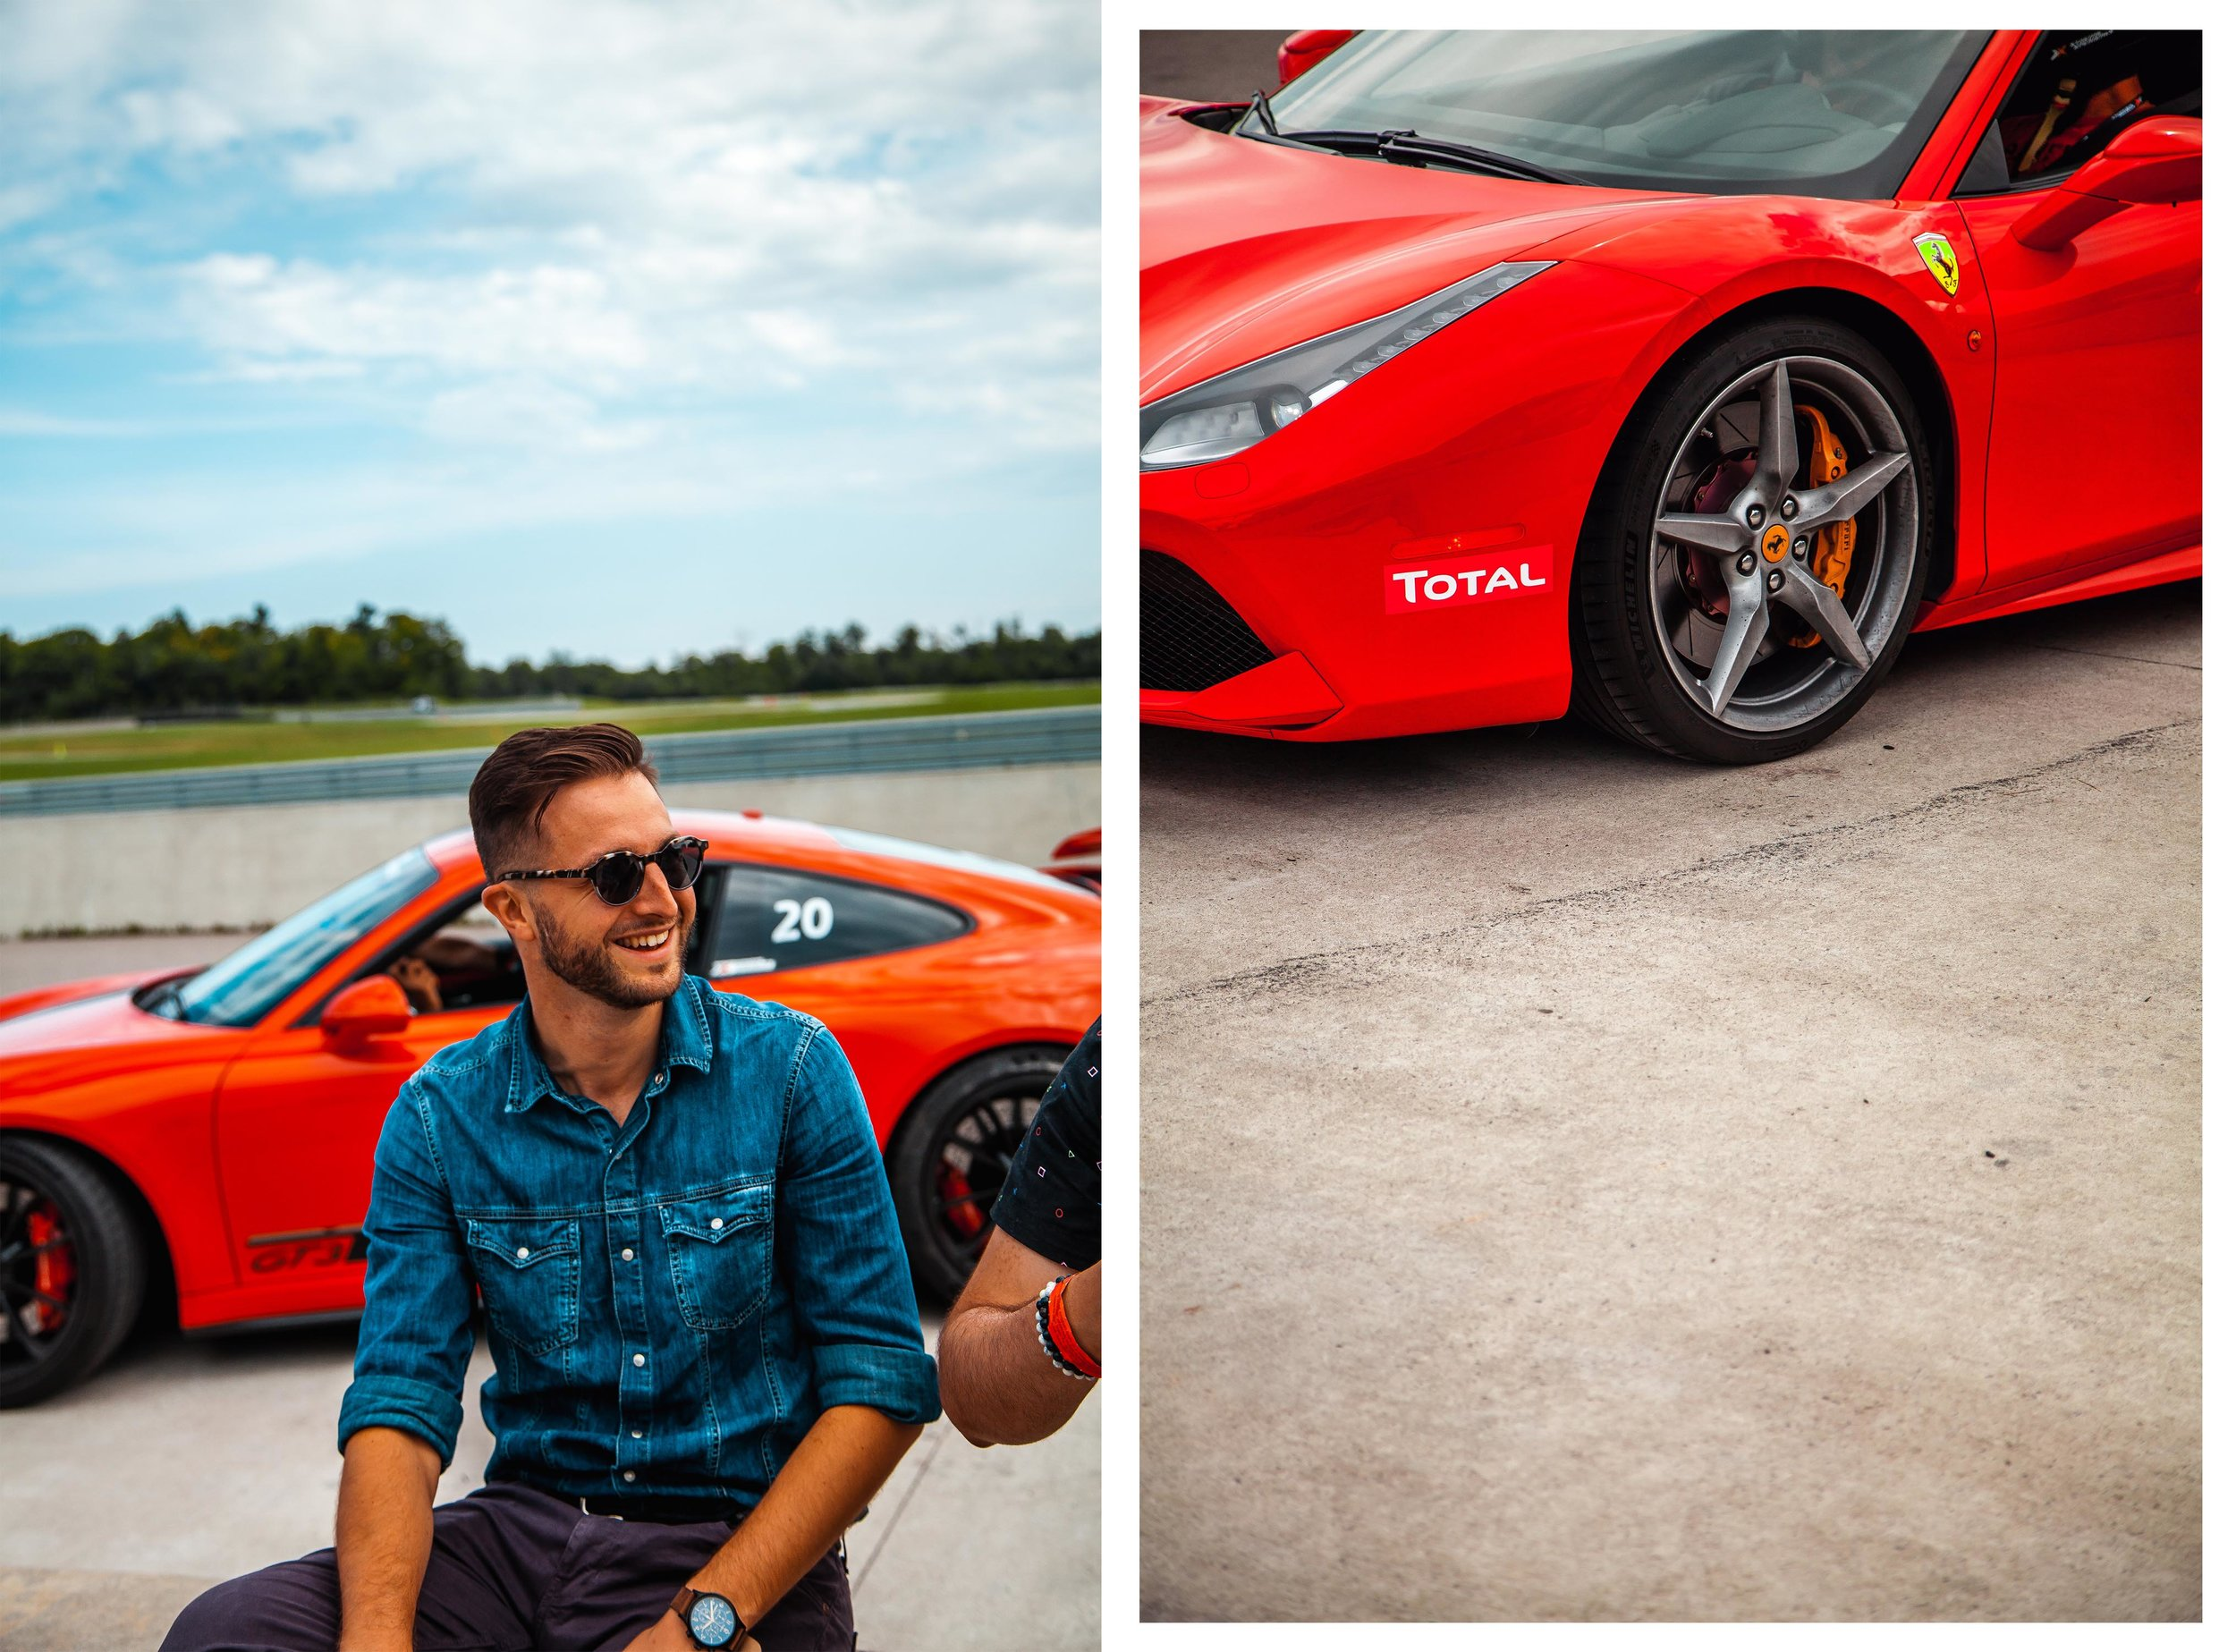 What-It's-Like-to-Drive-a-Ferrari-for-the-first-time.jpg